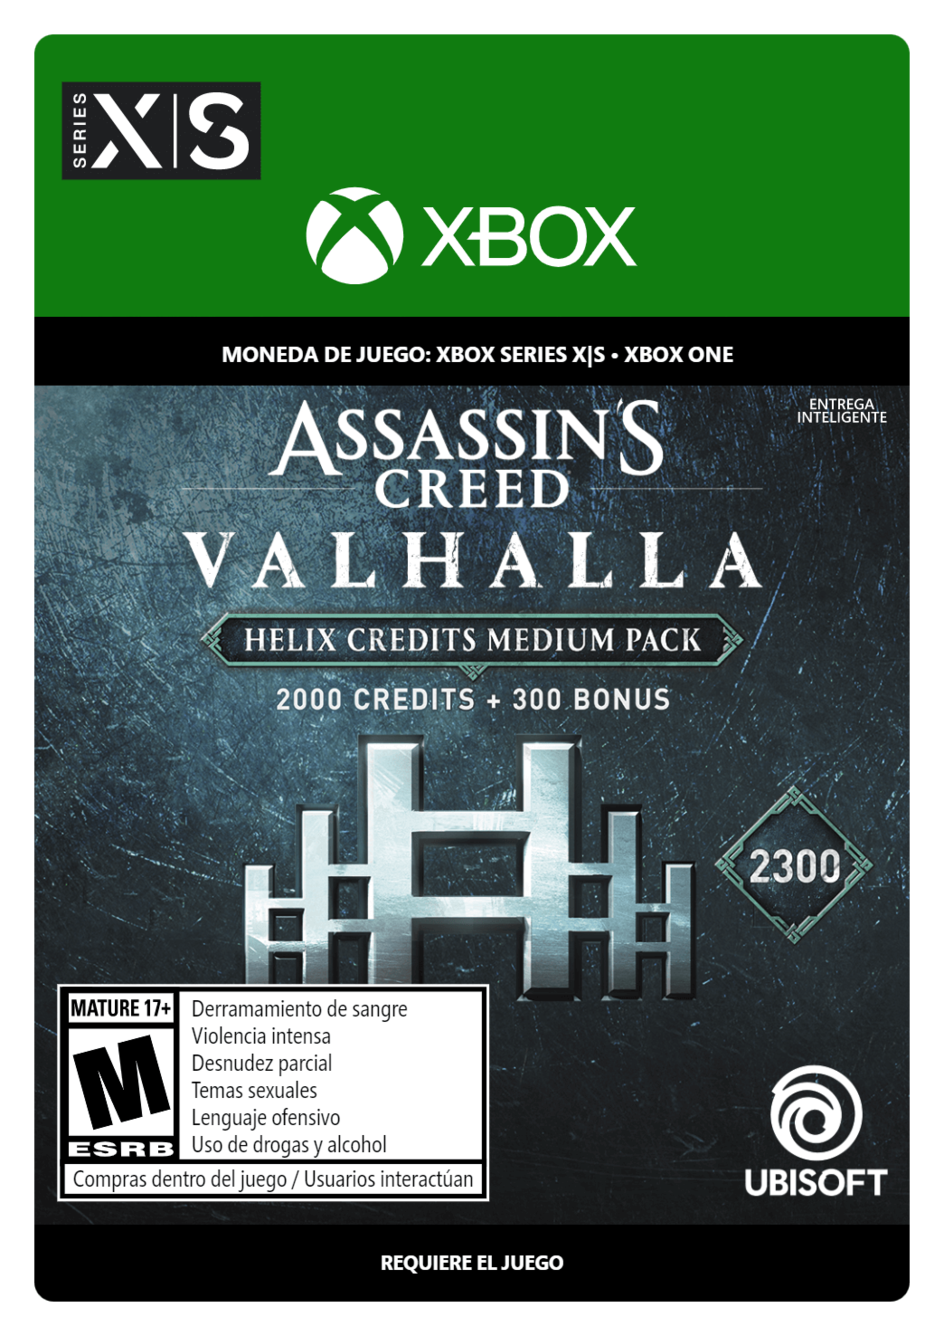 Assassins Creed Valhalla Medium Helix Credits Pack 2300